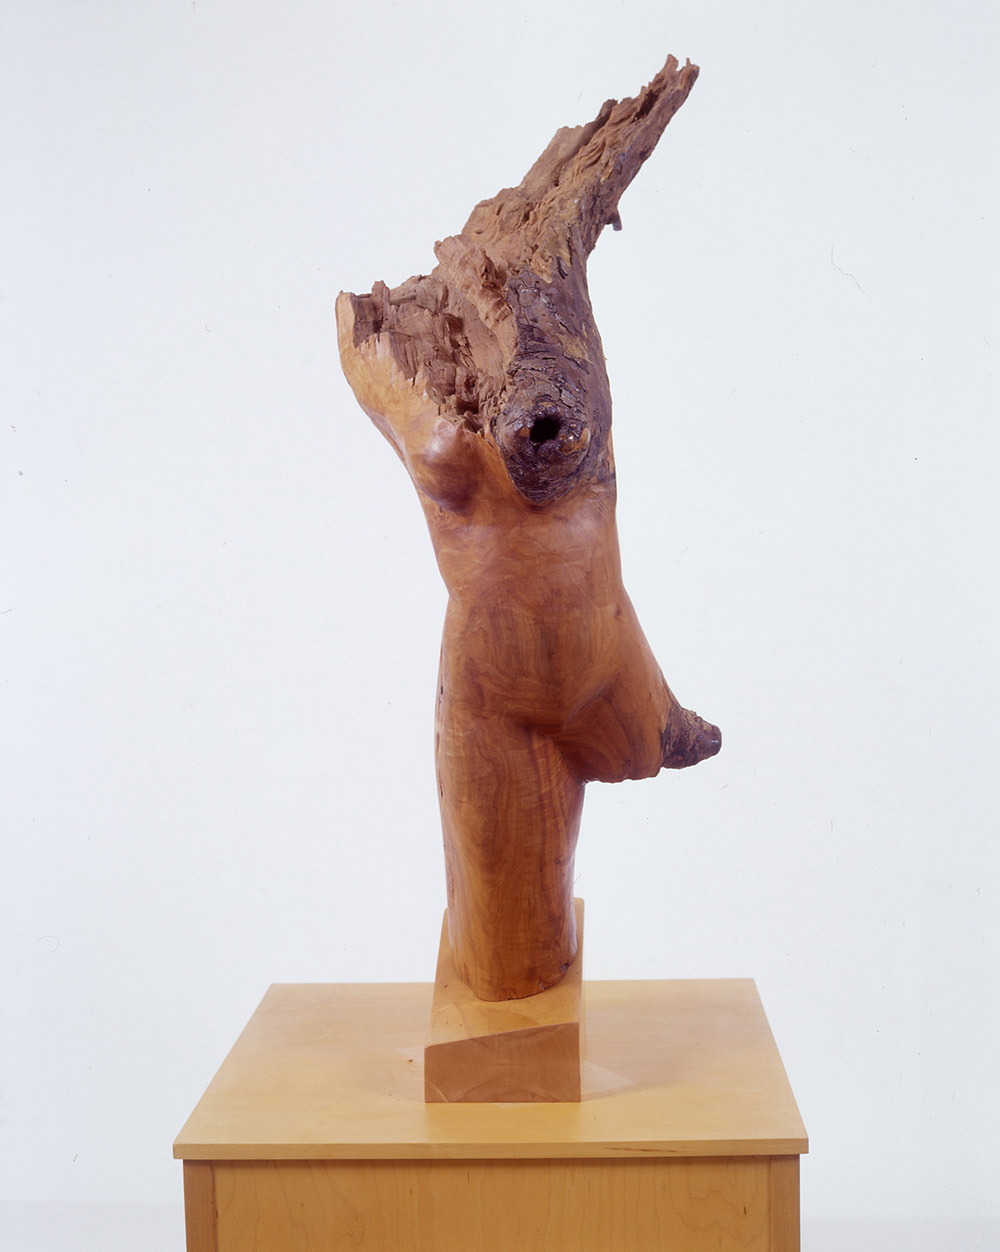 16.a-Ono-Victory-1996.-Apple-wood-129.5-x-68.6-x-35.6-cm-x.jpg